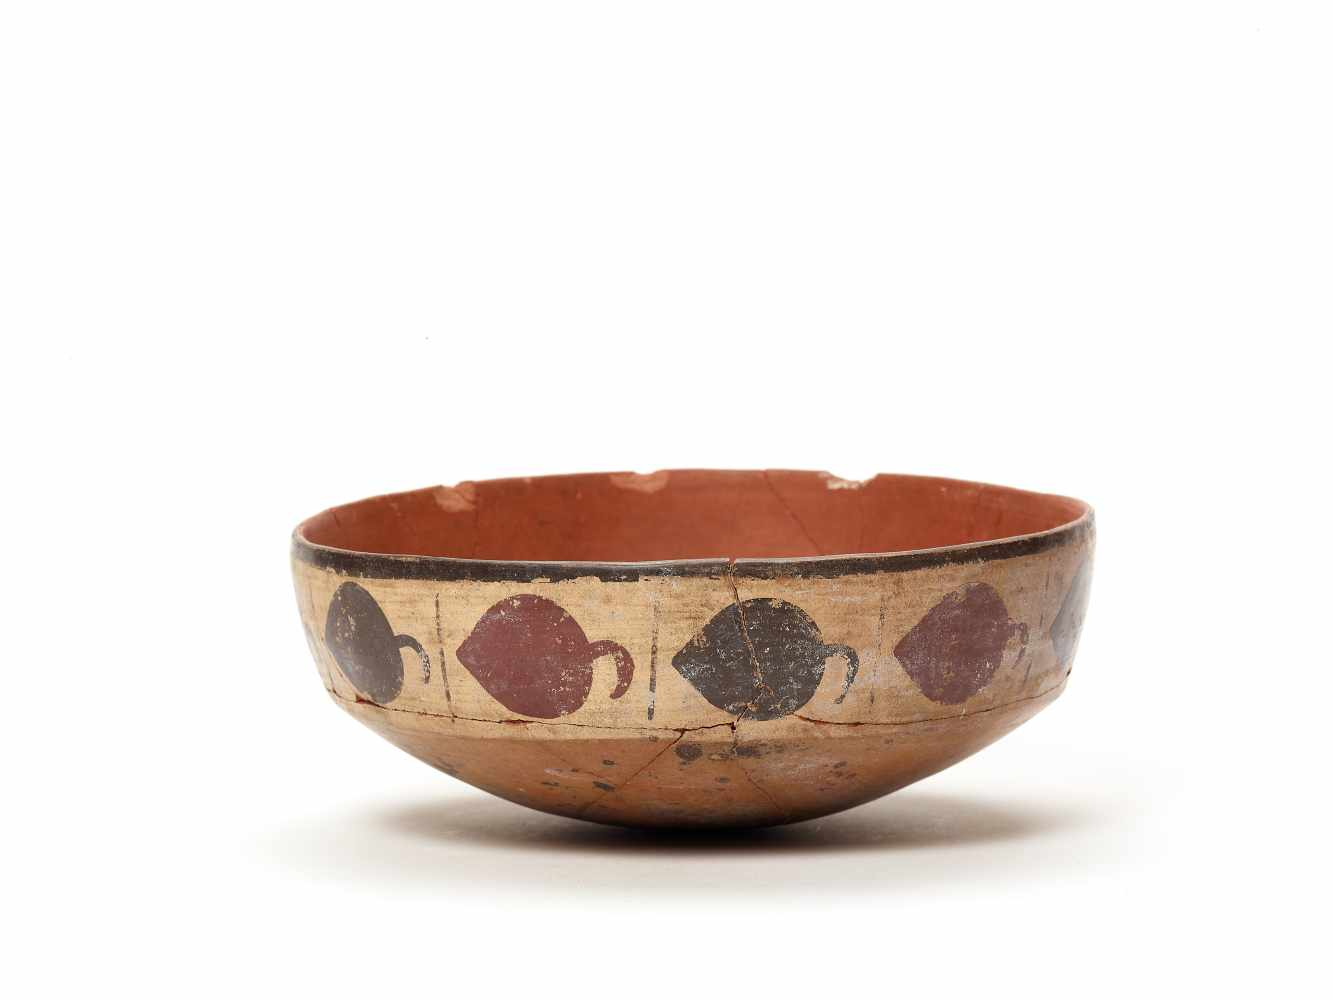 BOWL WITH BAND DECORATION - NAZCA, PERU, C. 300-600 ADPainted clayNazca, Peru, c. 300-600 ADArched - Image 4 of 5